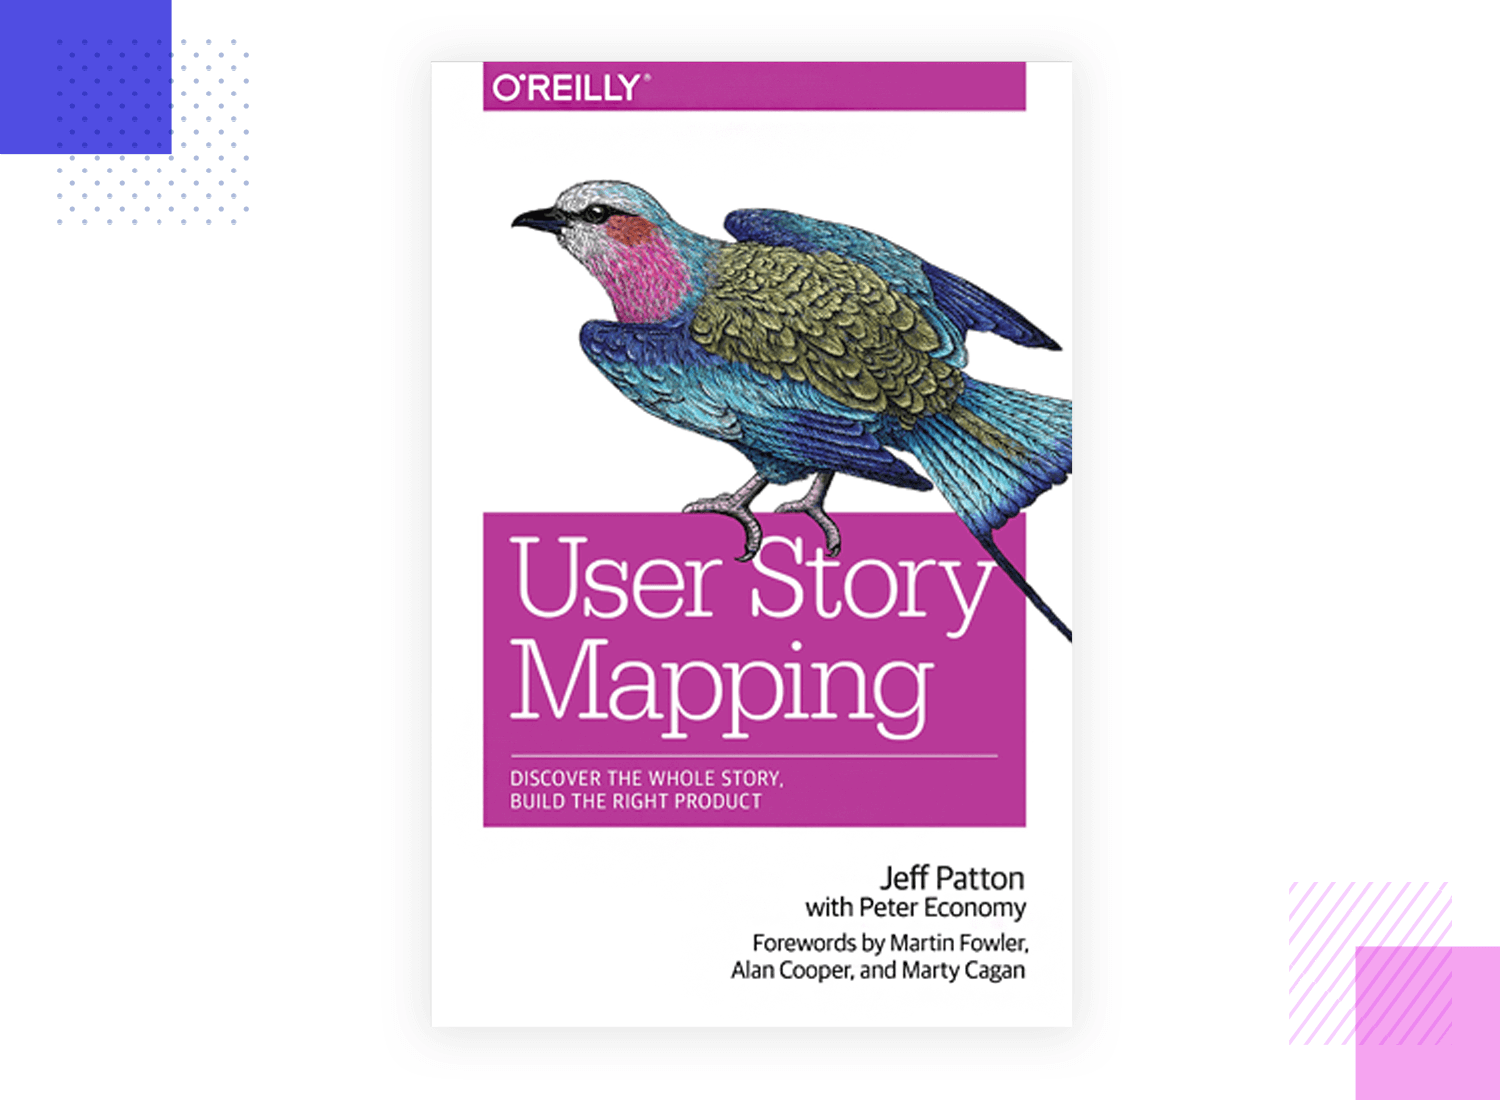 User story mapping - book by Jeff Patton